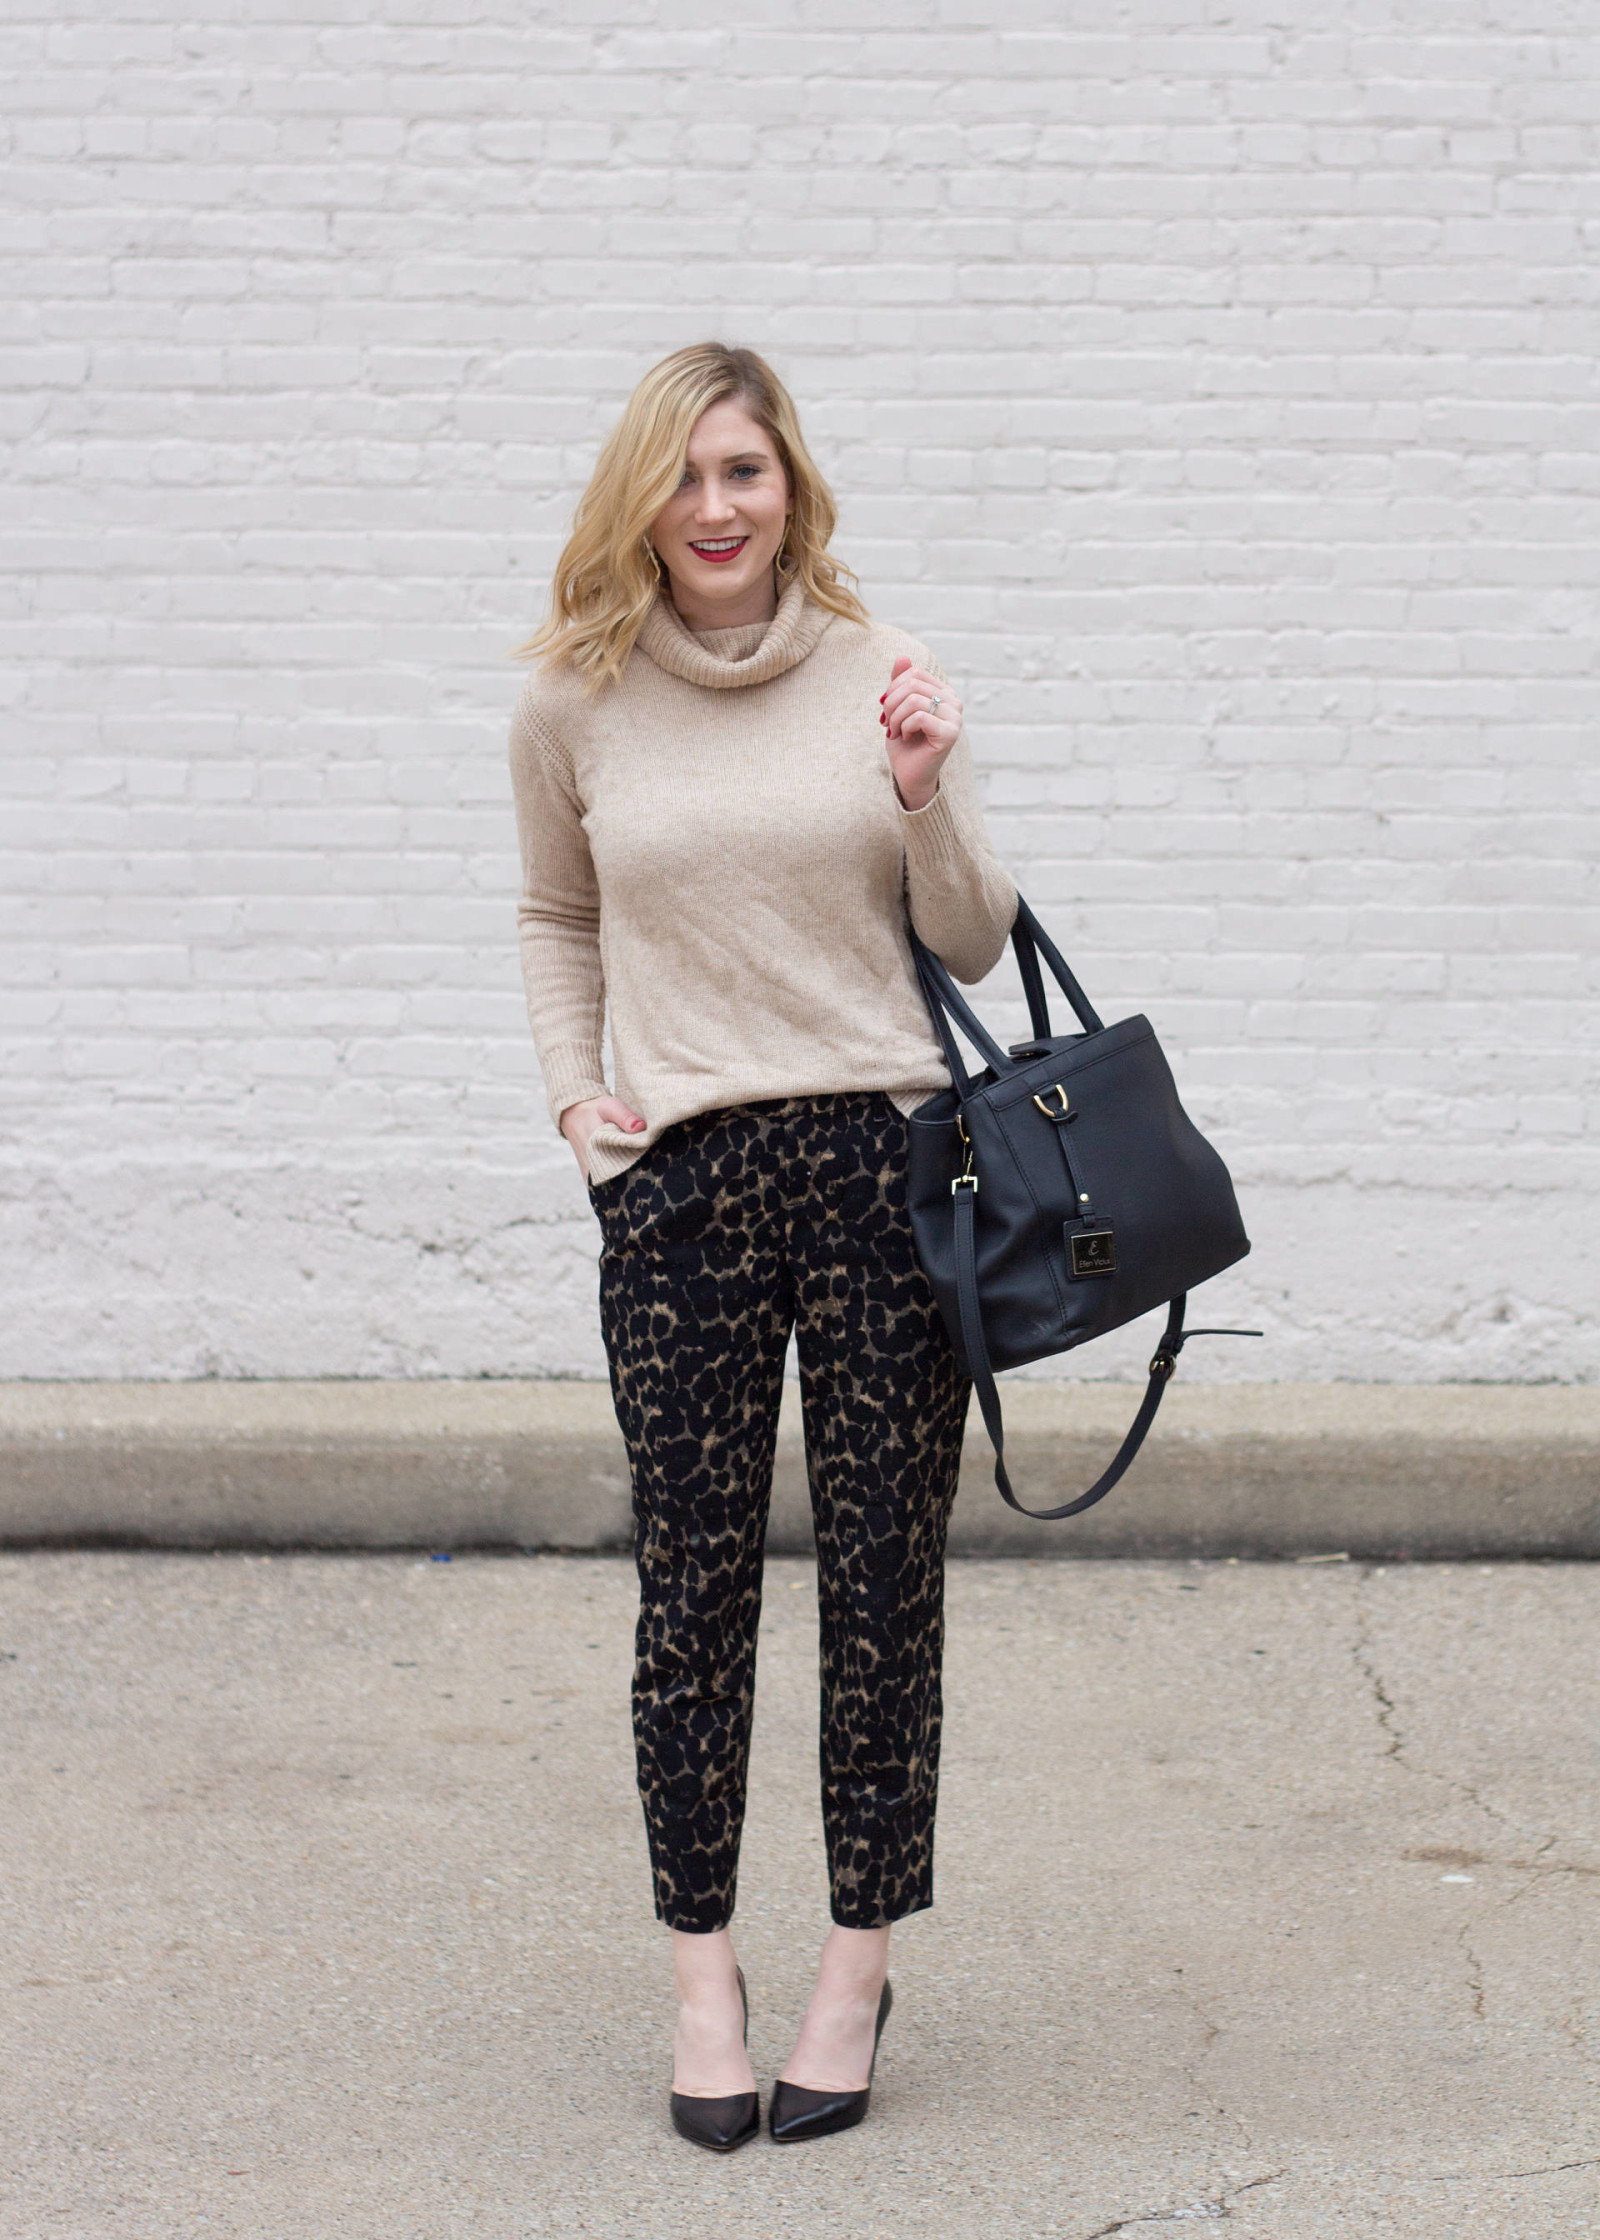 THE BEST PAIR OF $10 LEOPARD TROUSERS.